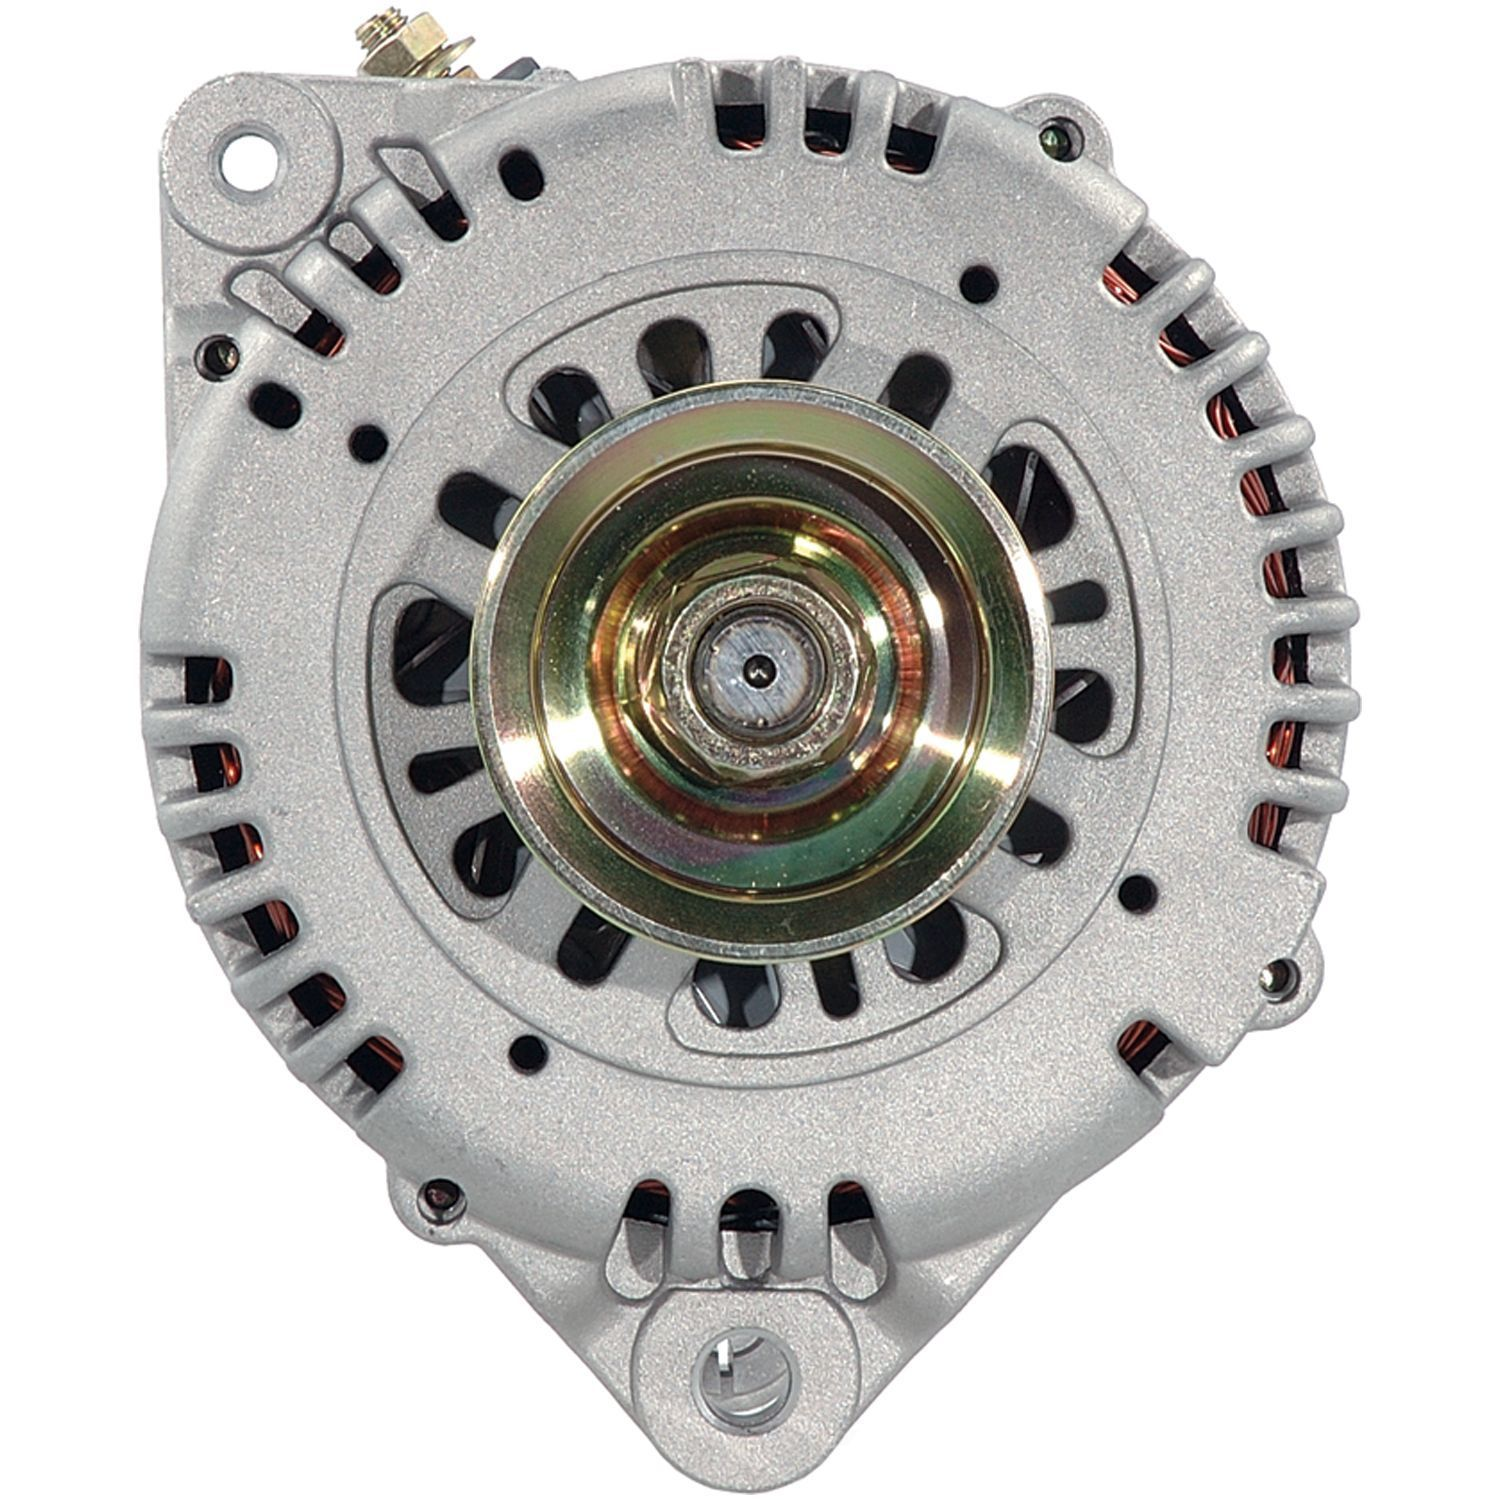 ACDELCO GOLD/PROFESSIONAL - Alternator - DCC 335-1322